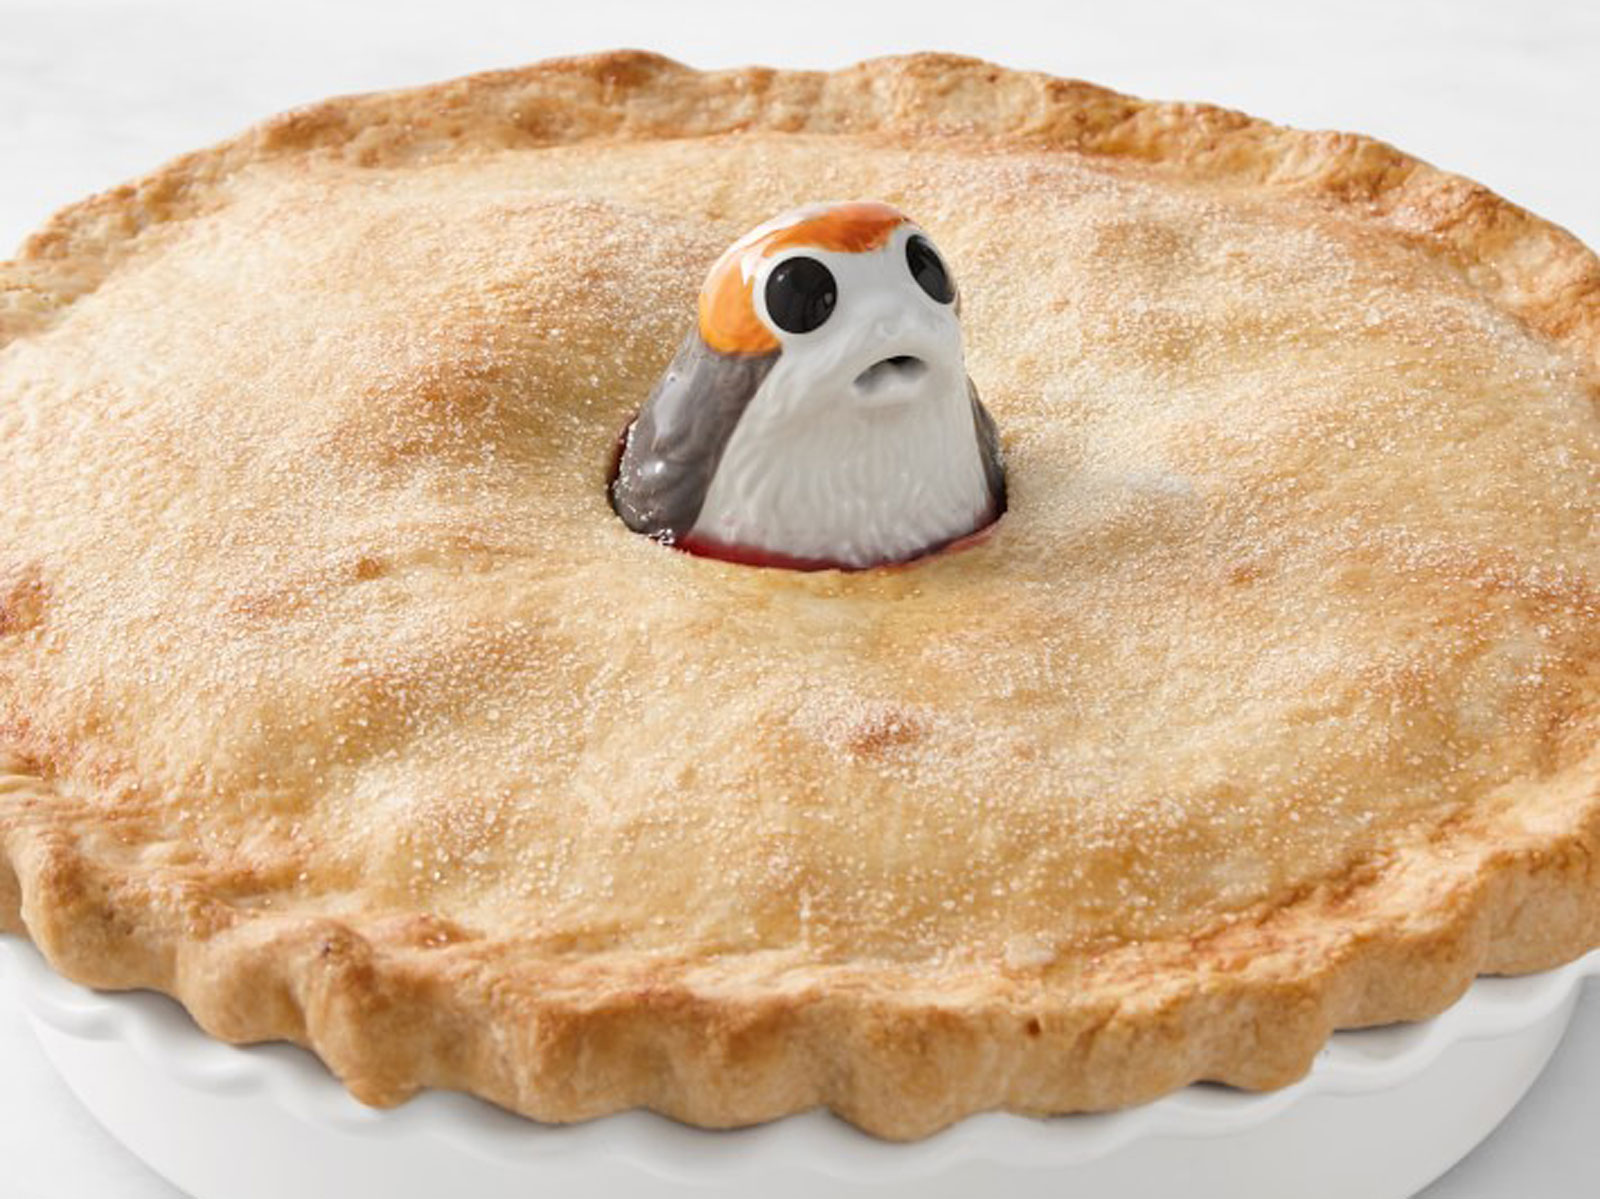 Le Creuset Star Wars Pie Porg